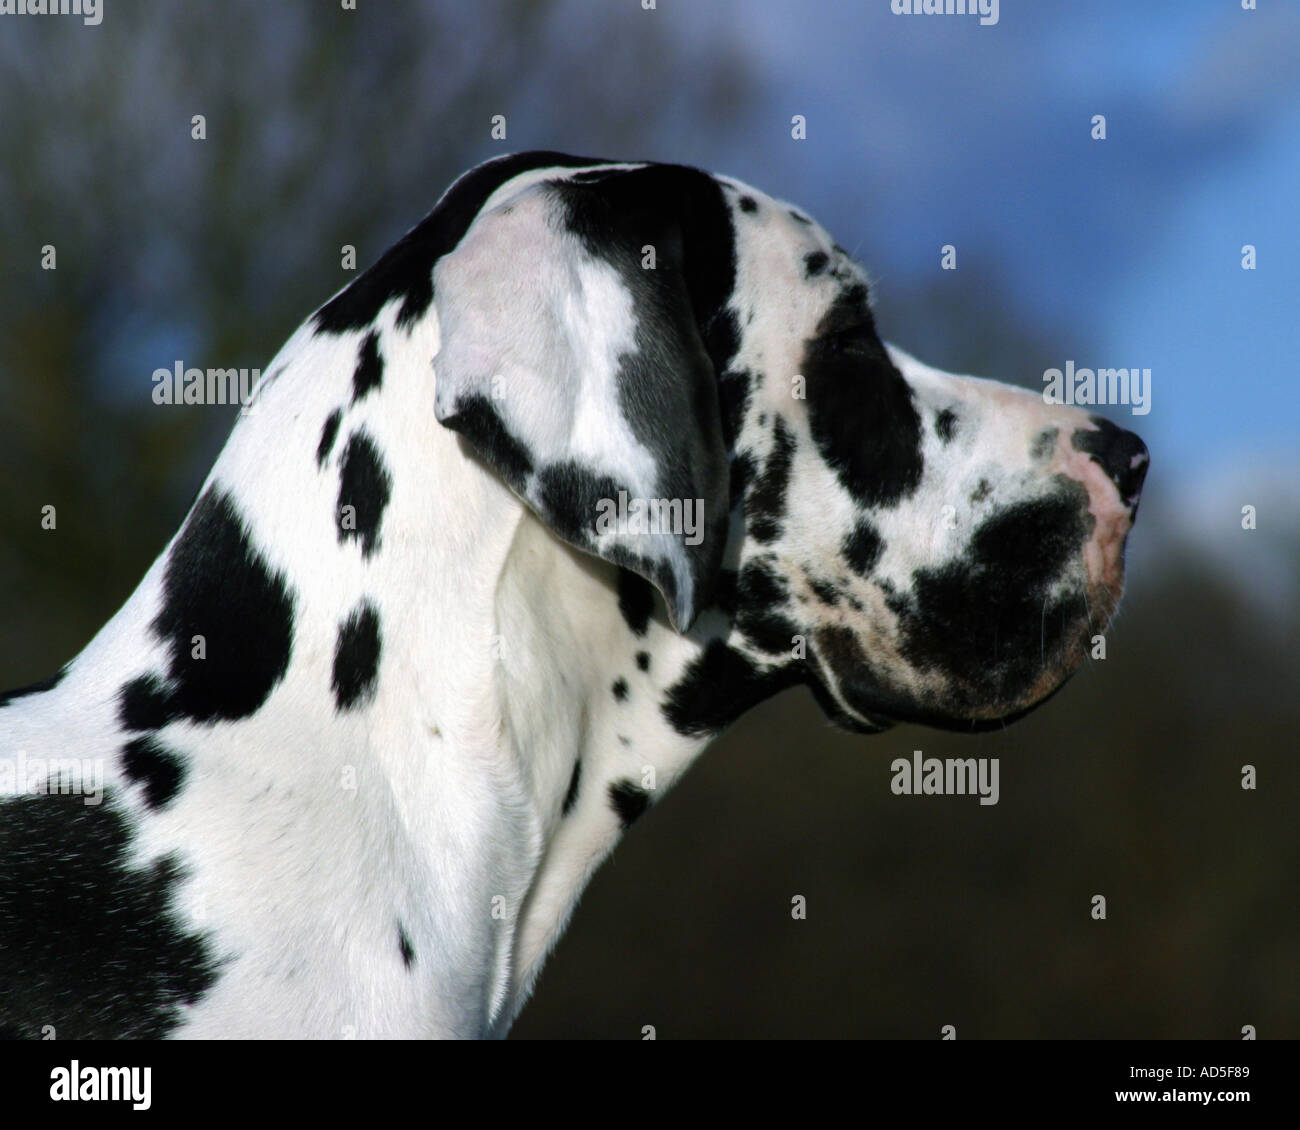 Harlequin great dane profile - Stock Image